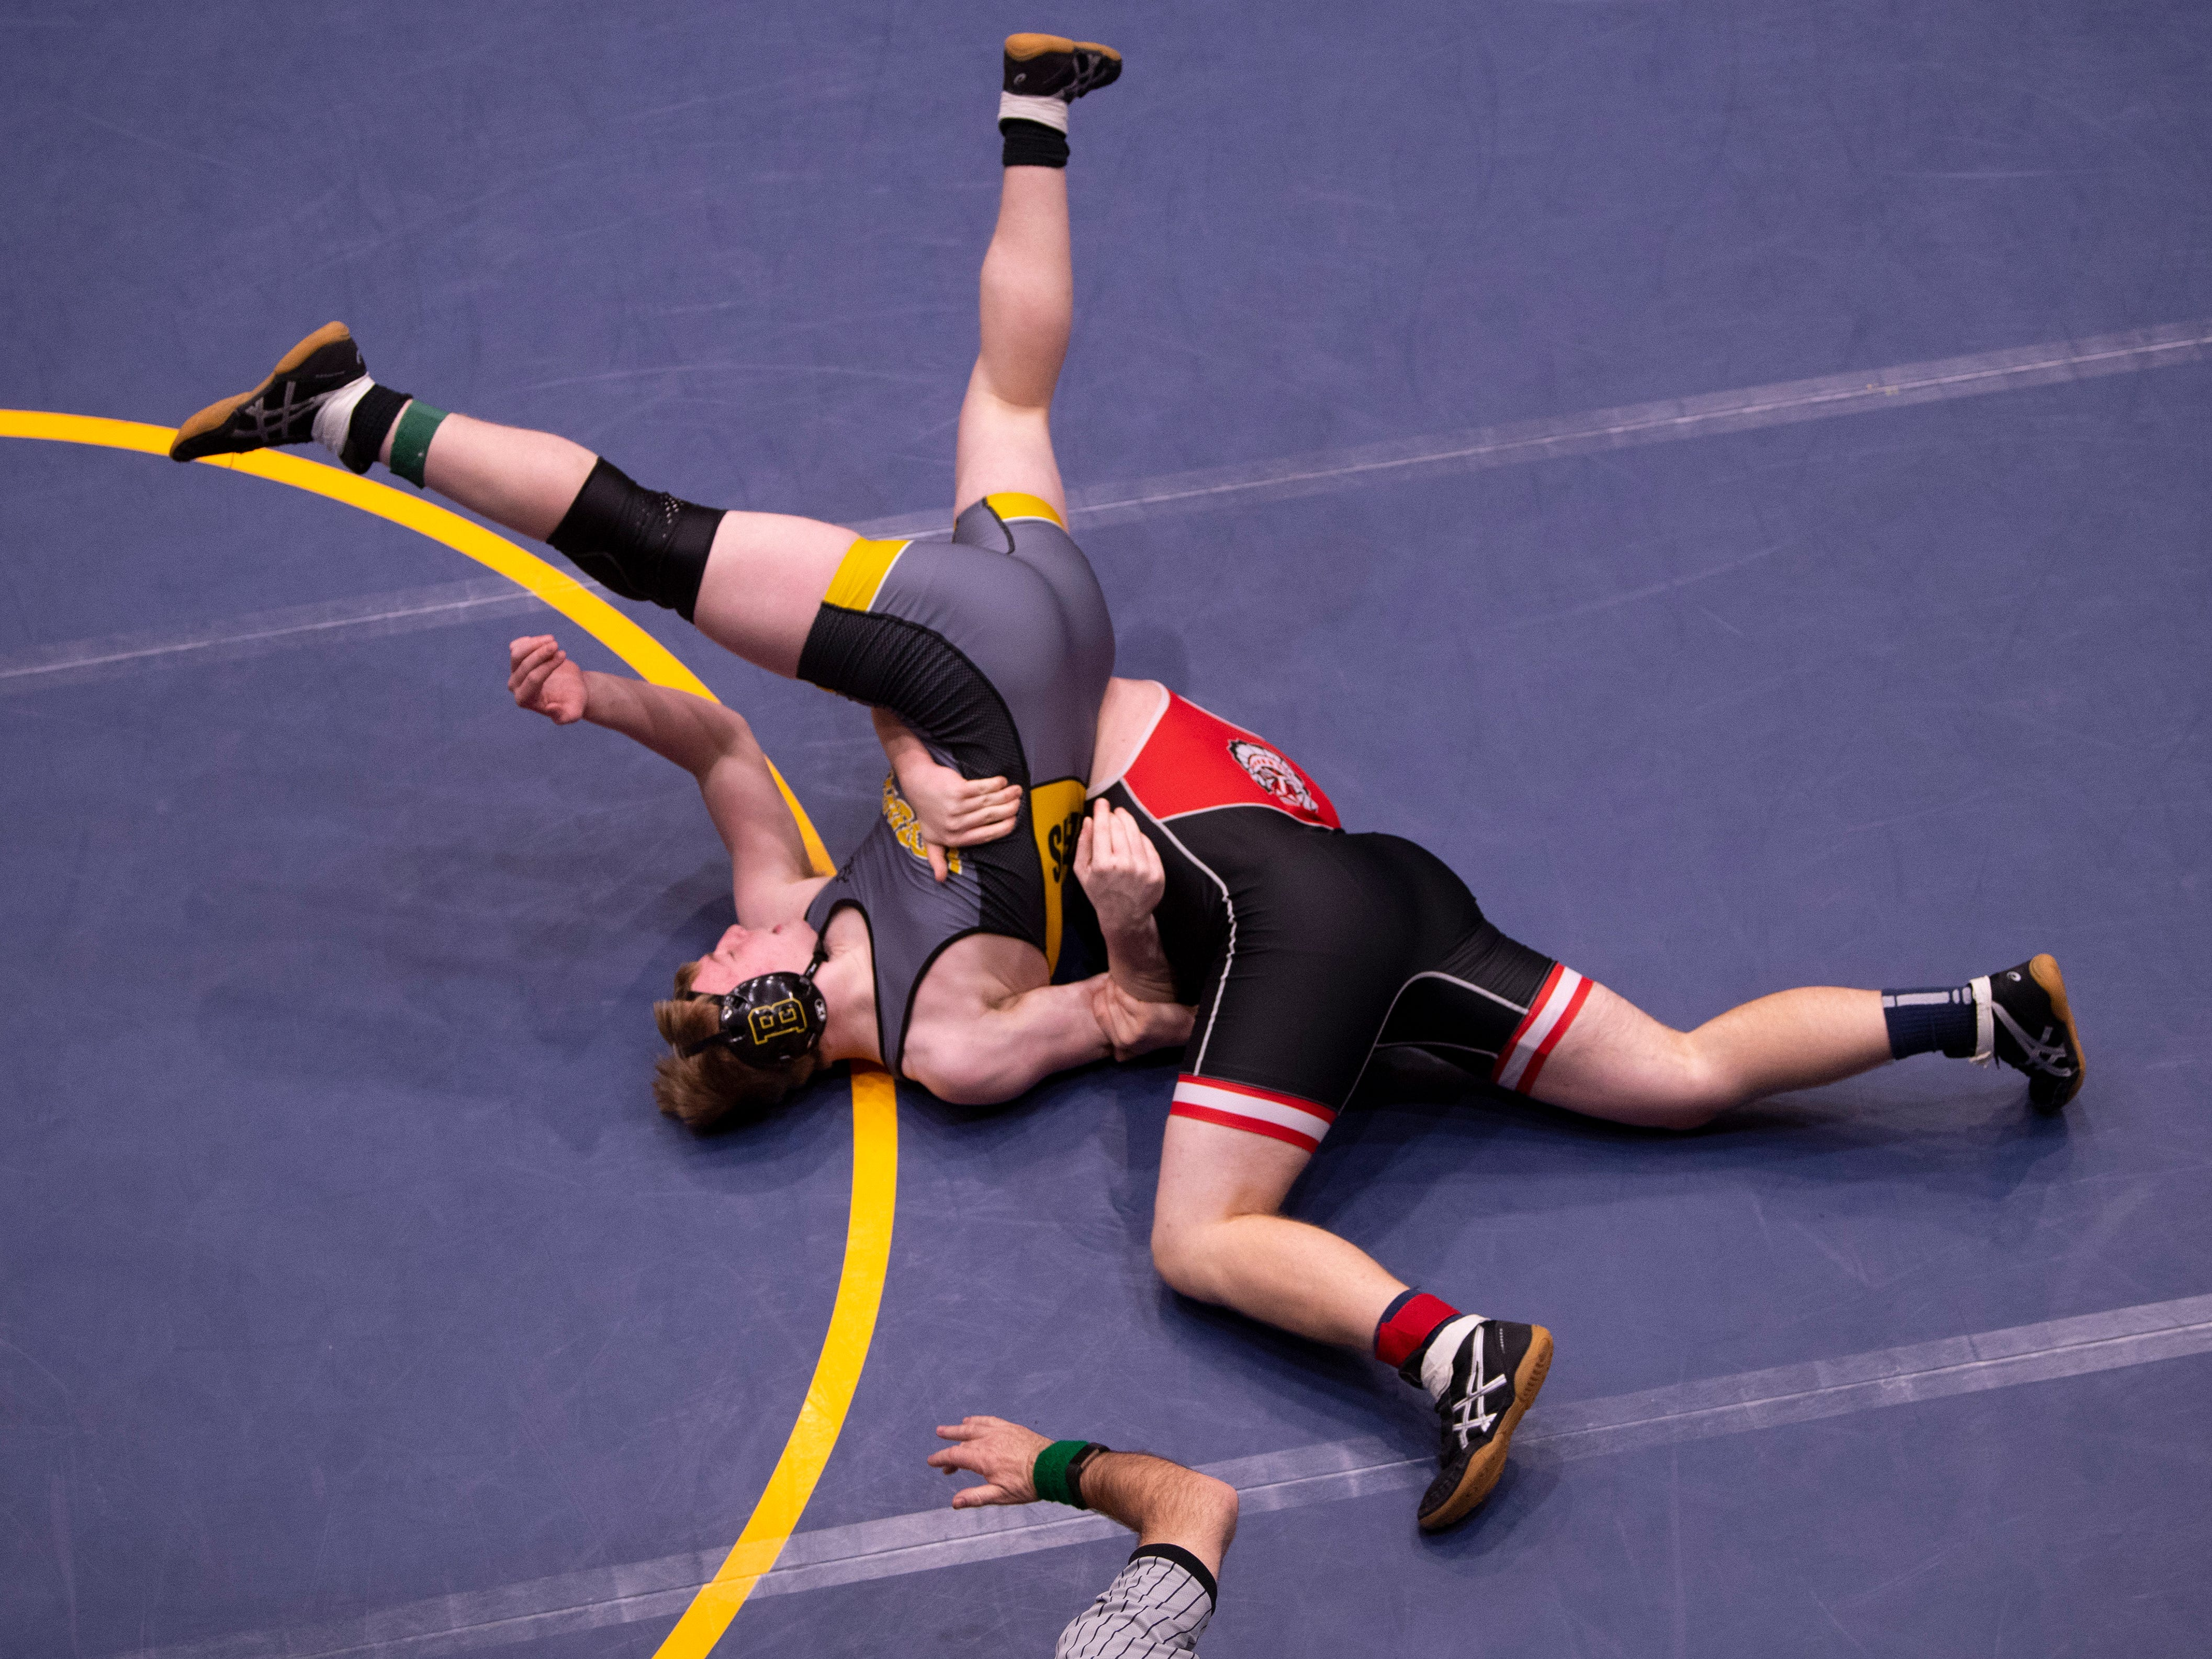 Boonville's Jackson Bell, left, is pinned by Harrison's Nate Greulich in their consolation match at the IHSAA Sectional at Castle High School Saturday afternoon. Greulich advanced to regionals with the win.